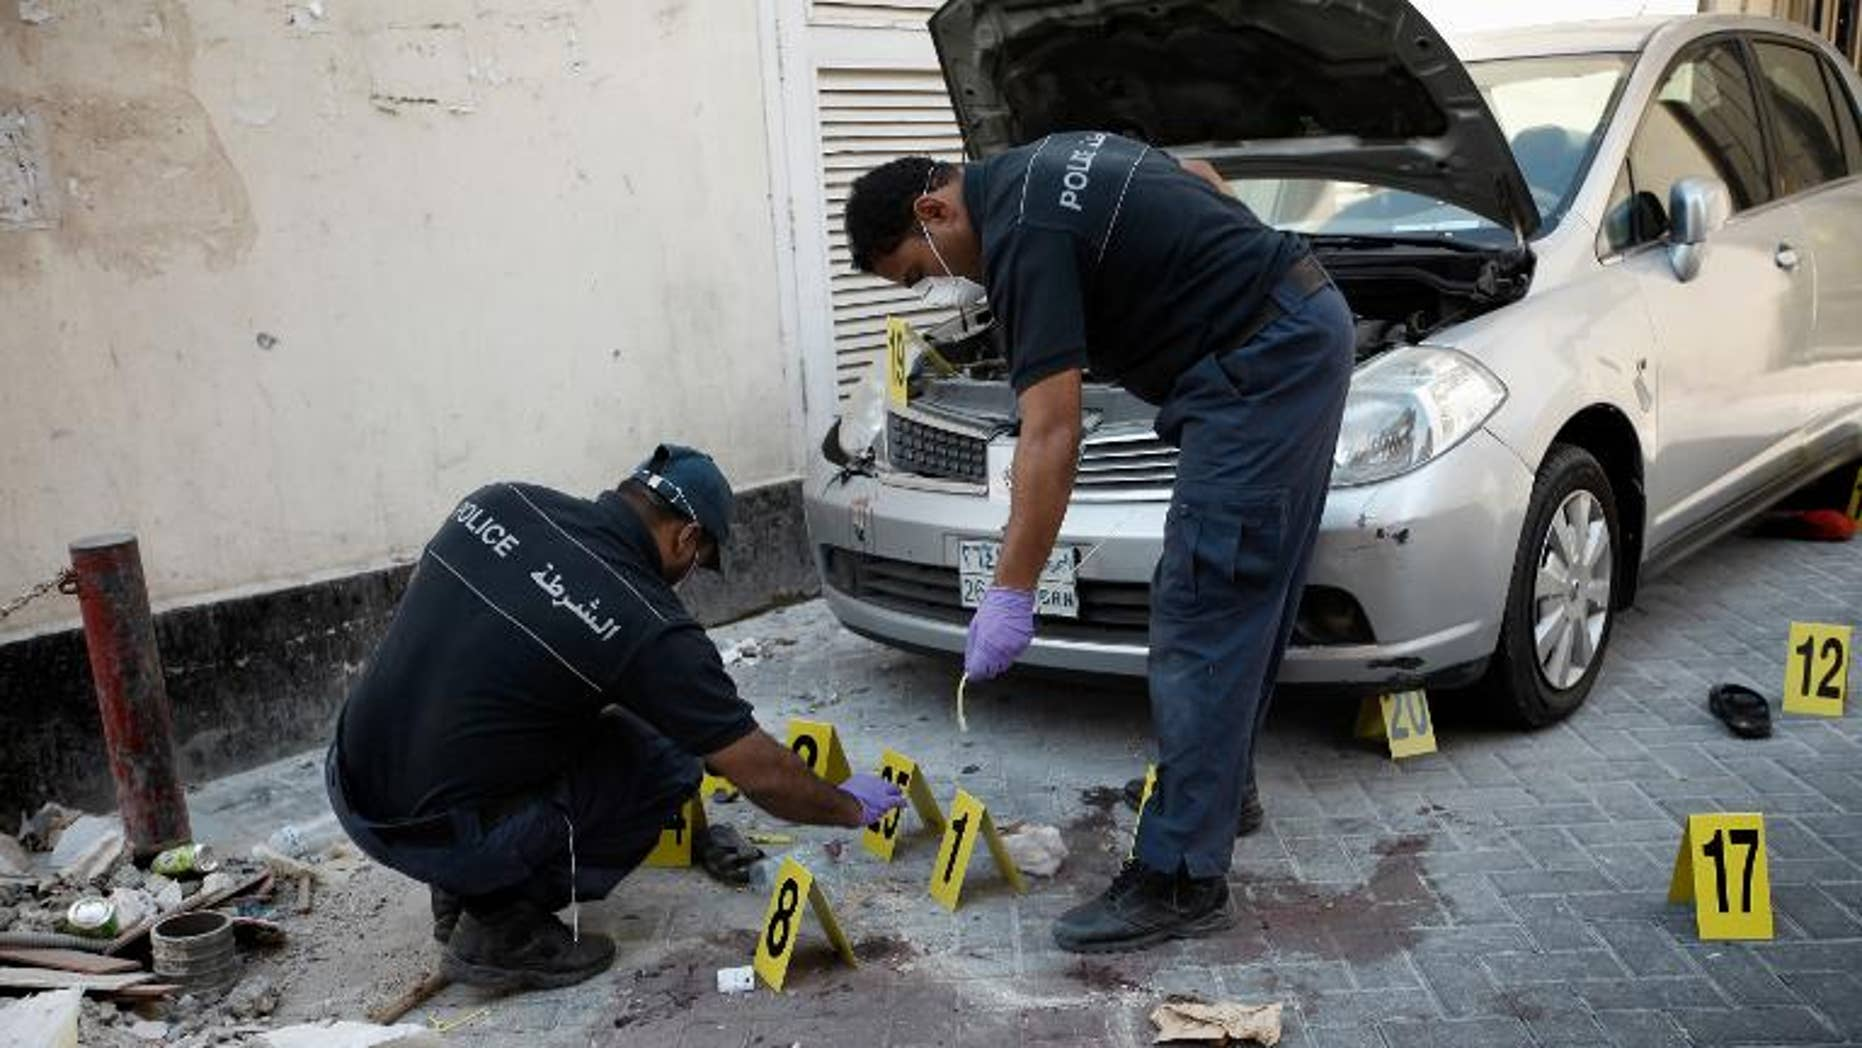 Bahraini police inspect the site of an explosion in the capital Manama, on November 5, 2012